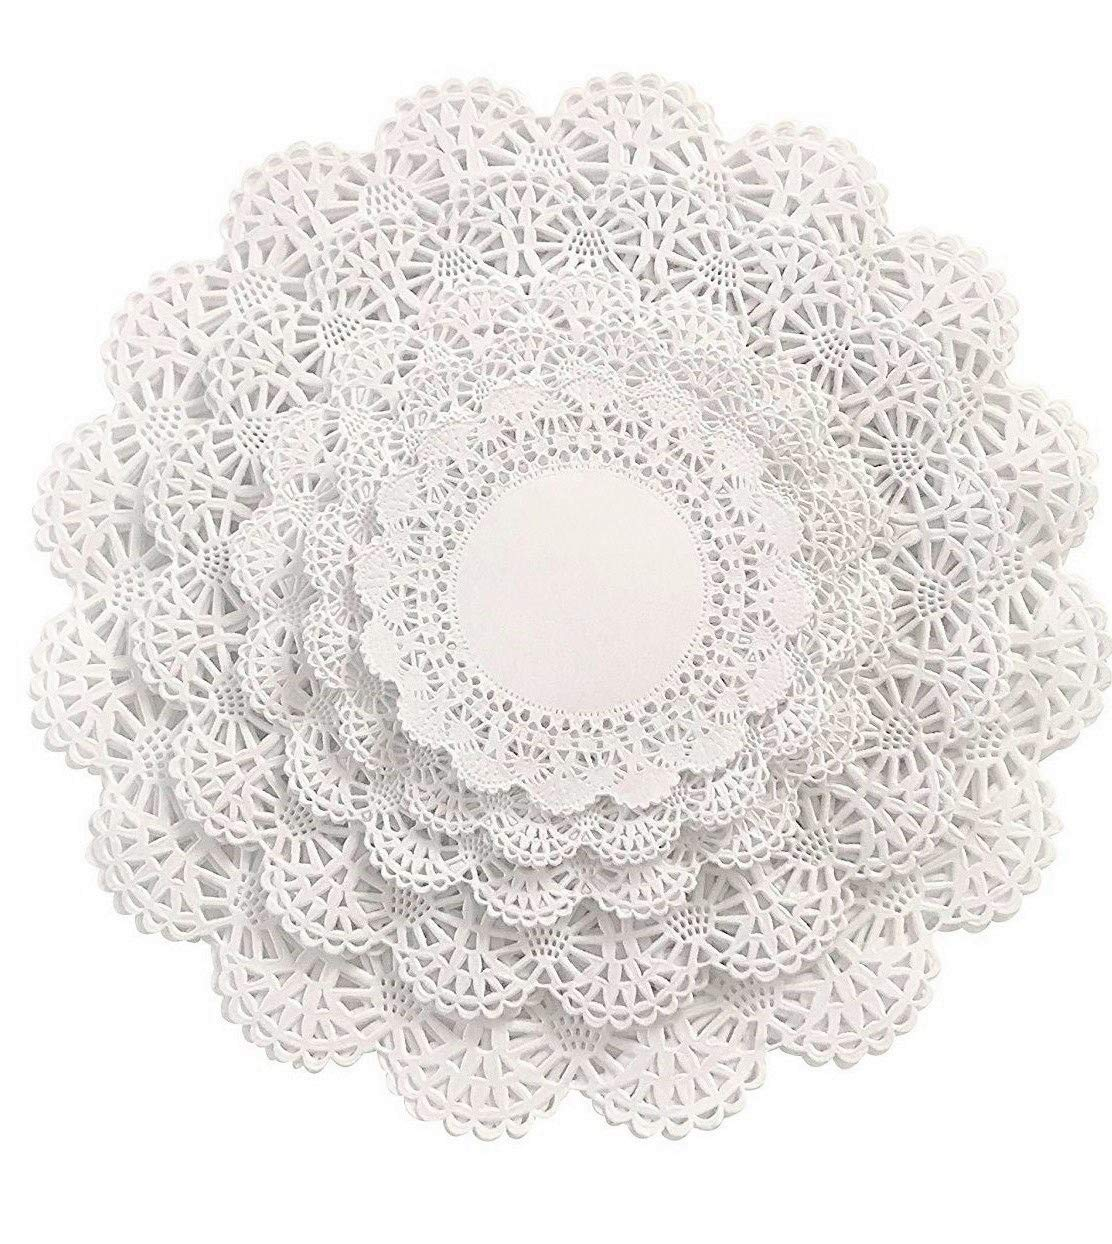 The Baker Celebrations 150 Paper Lace Doilies Variety Pack 30 Each of 4, 5, 6, 8, and 10 inch (30 of Each Size) White Assorted Sizes